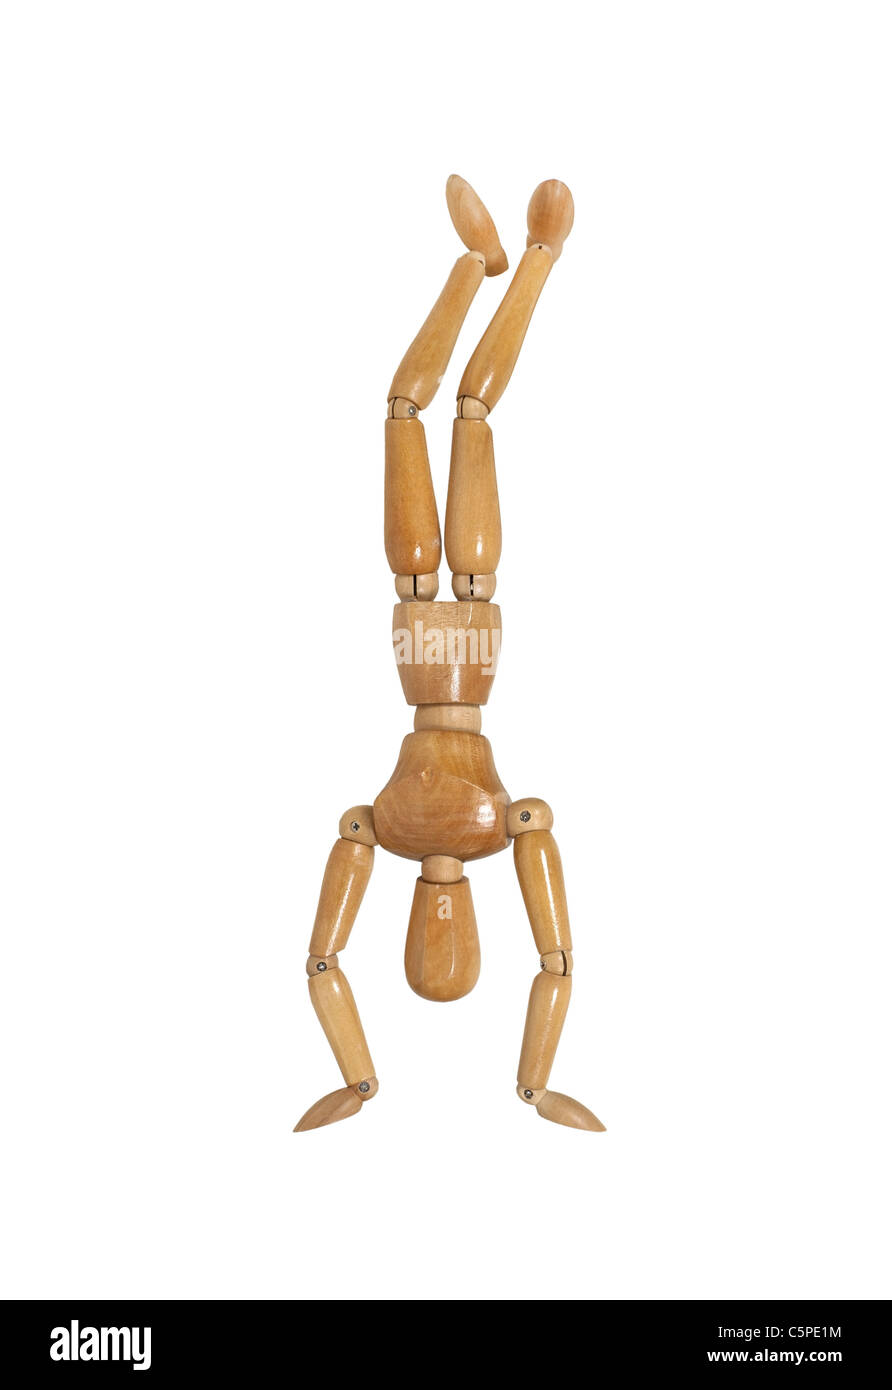 Wooden model representing a person doing a hand stand - path included - Stock Image